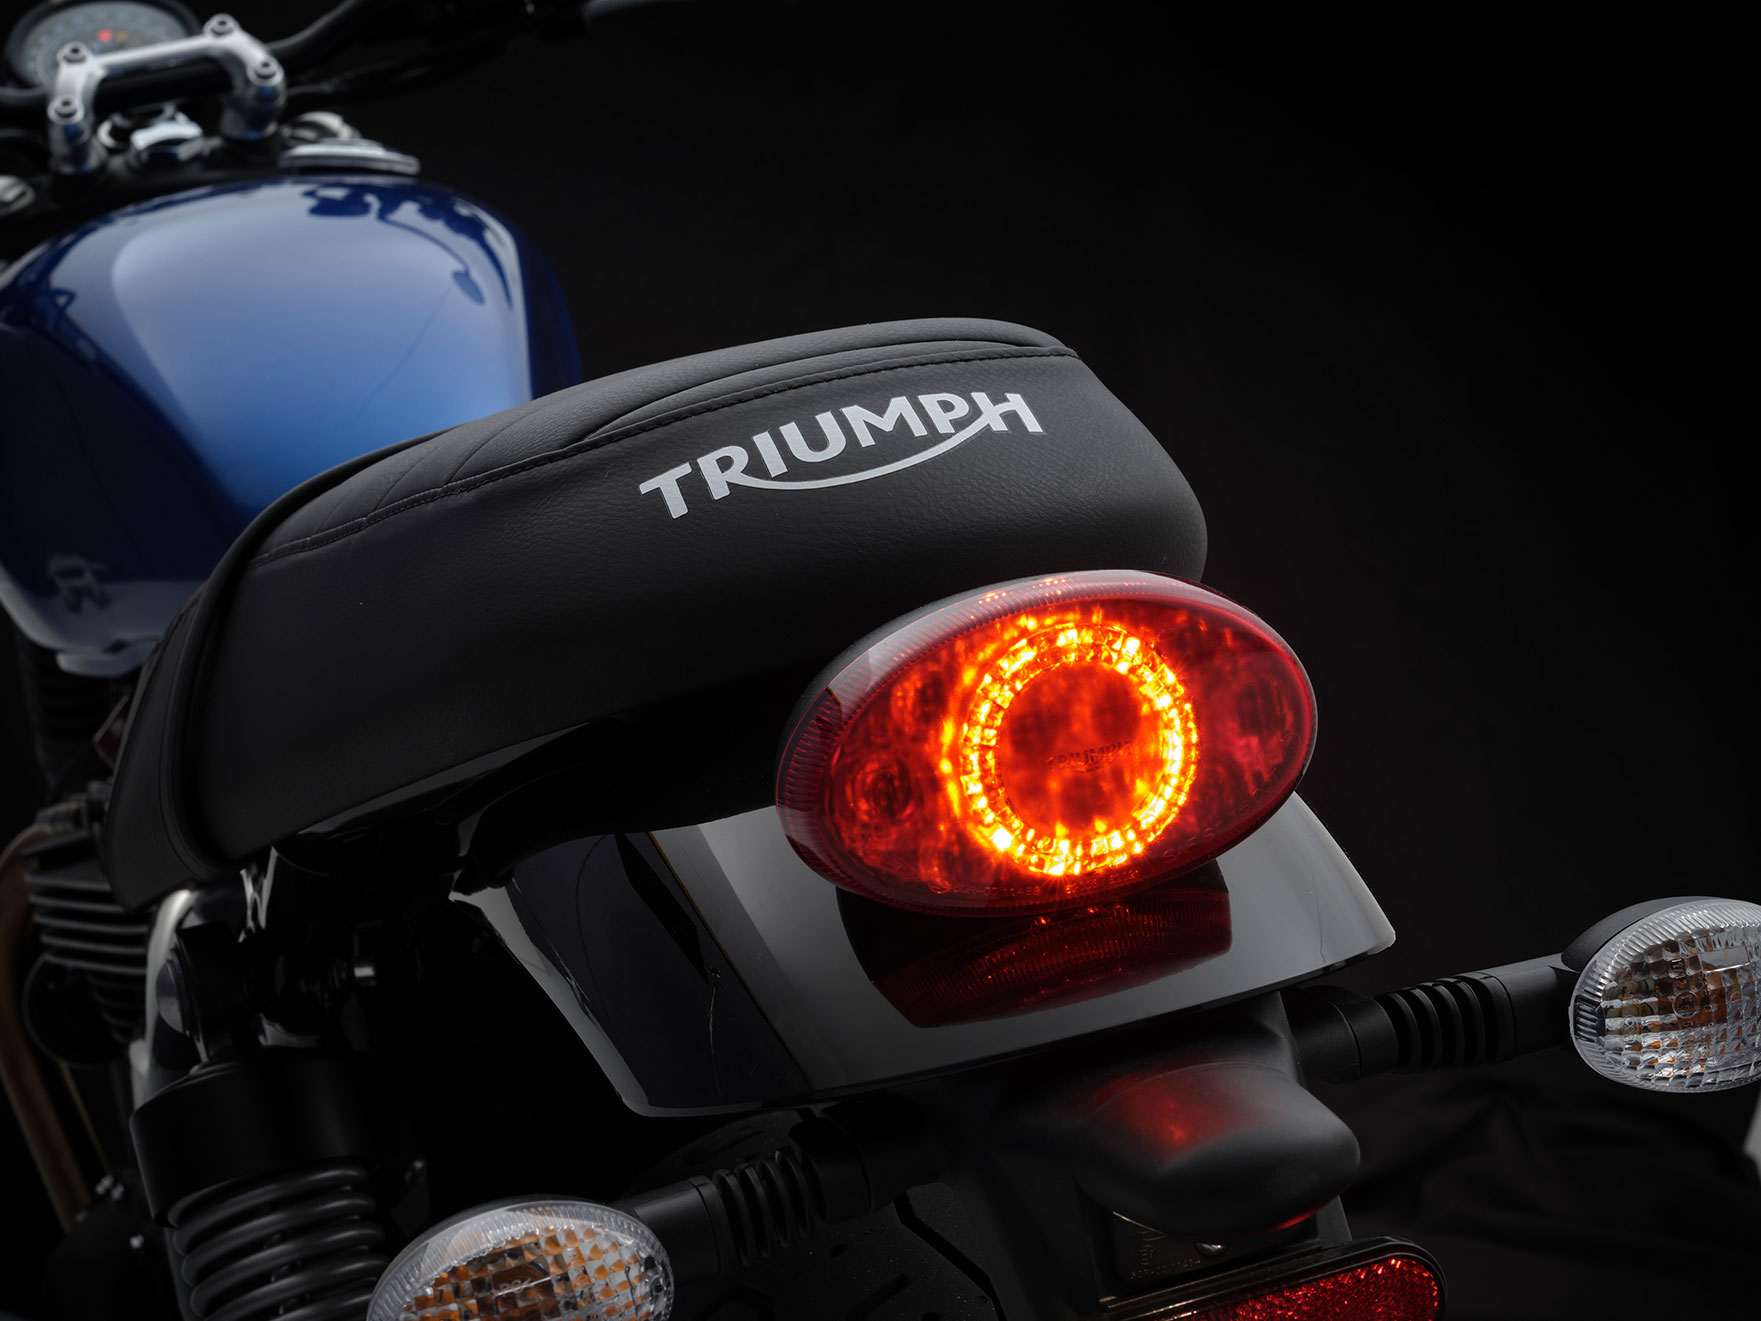 StreetTwin_21MY_1861_BR_Details4